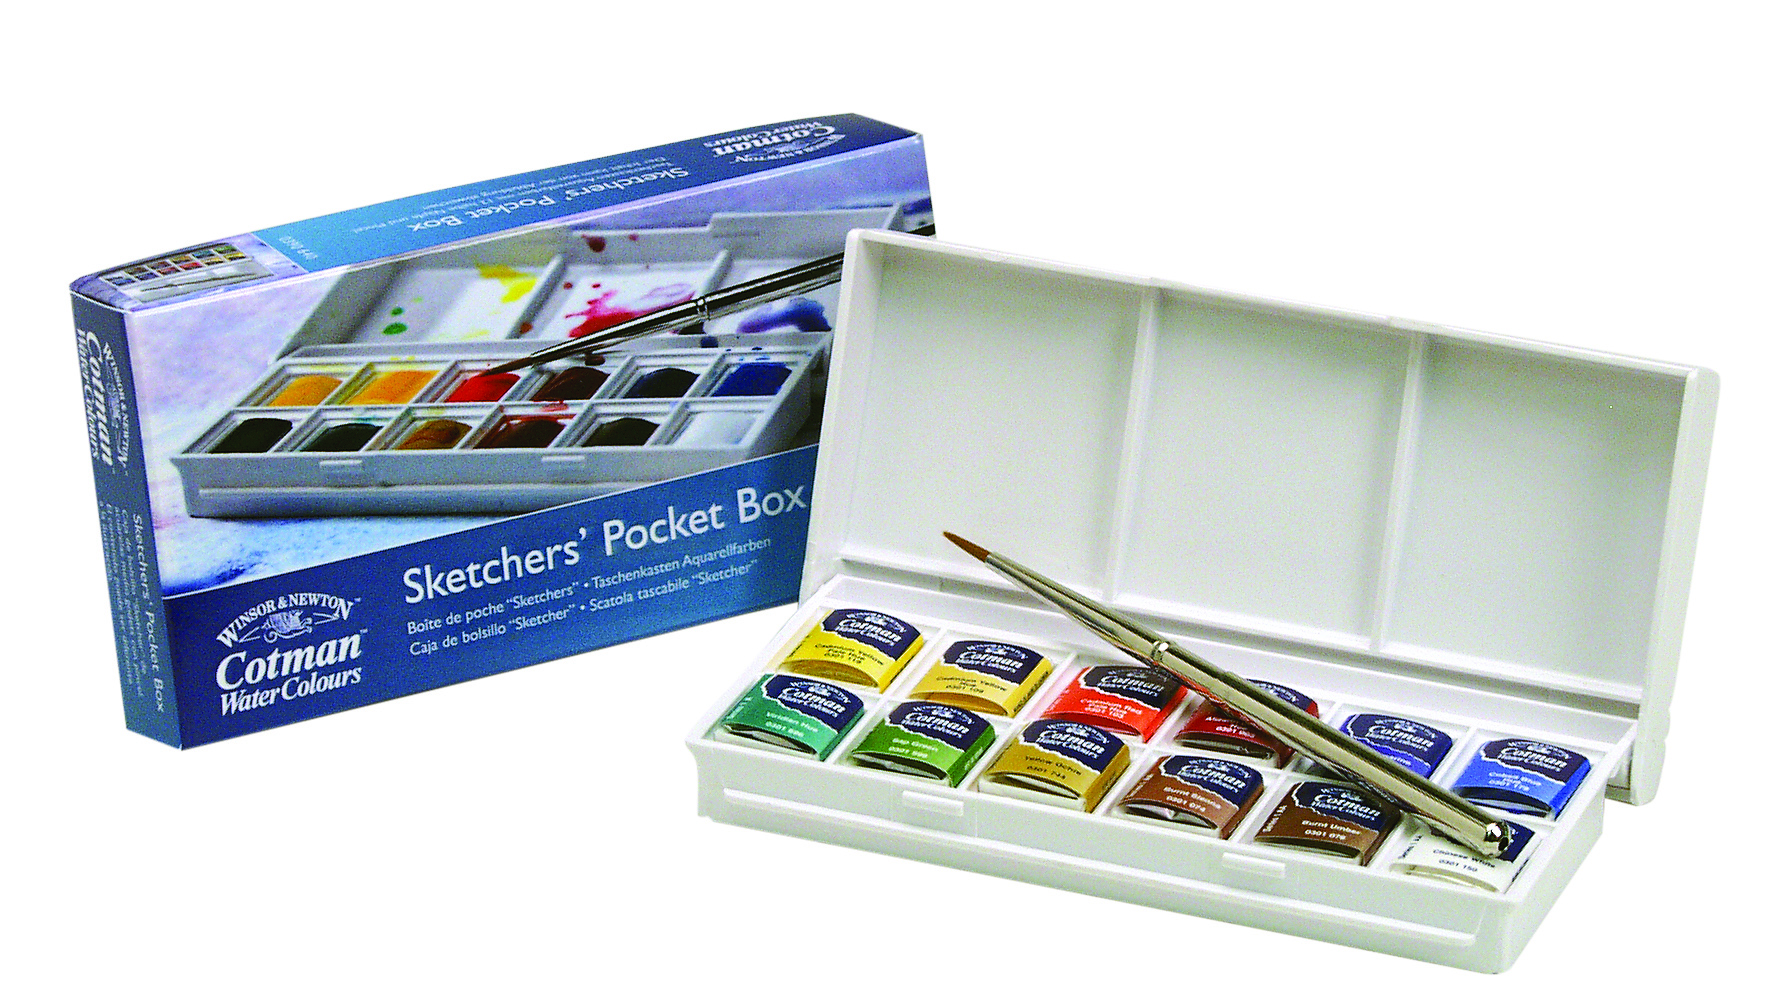 Cotman Pocket Box